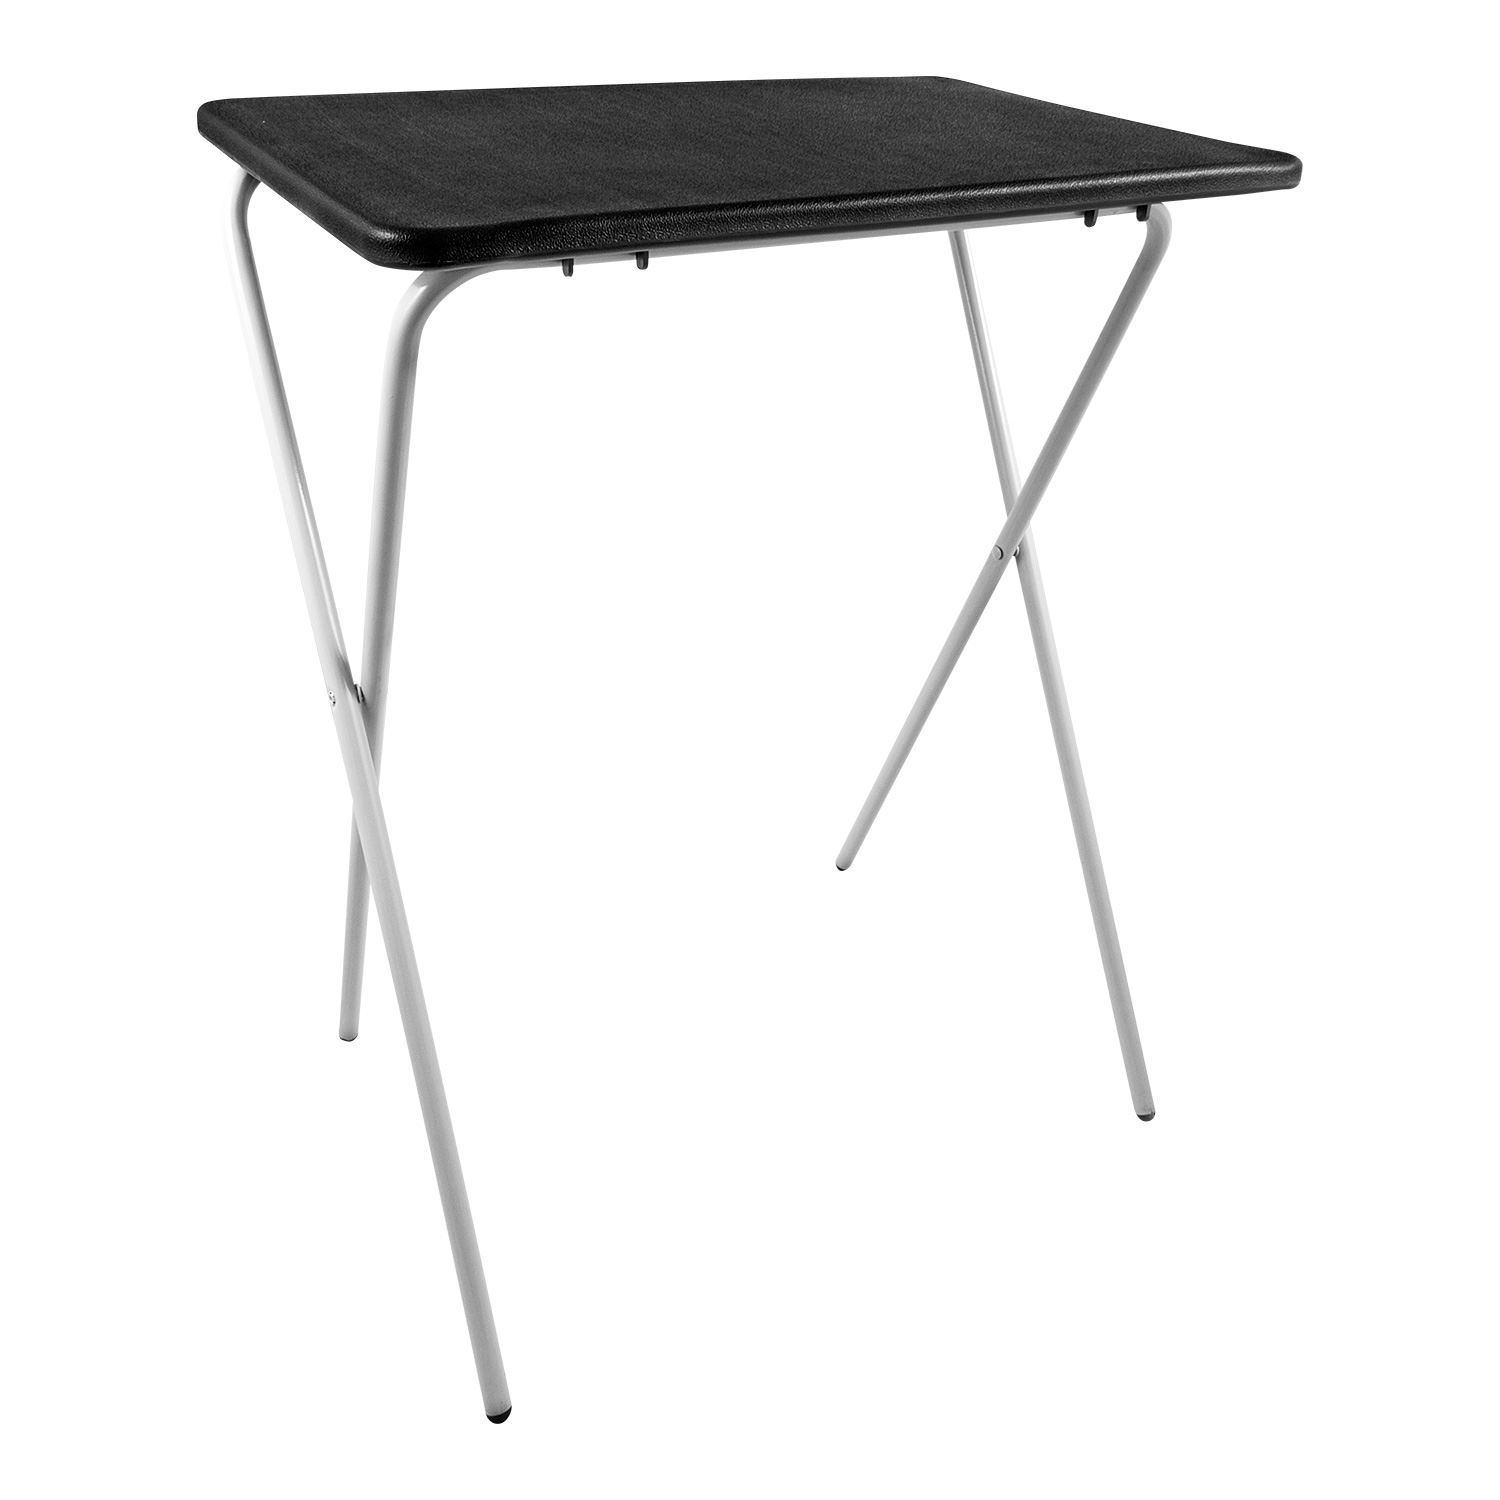 Folding Lightweight Tray Table Desk Ideal For Laptops